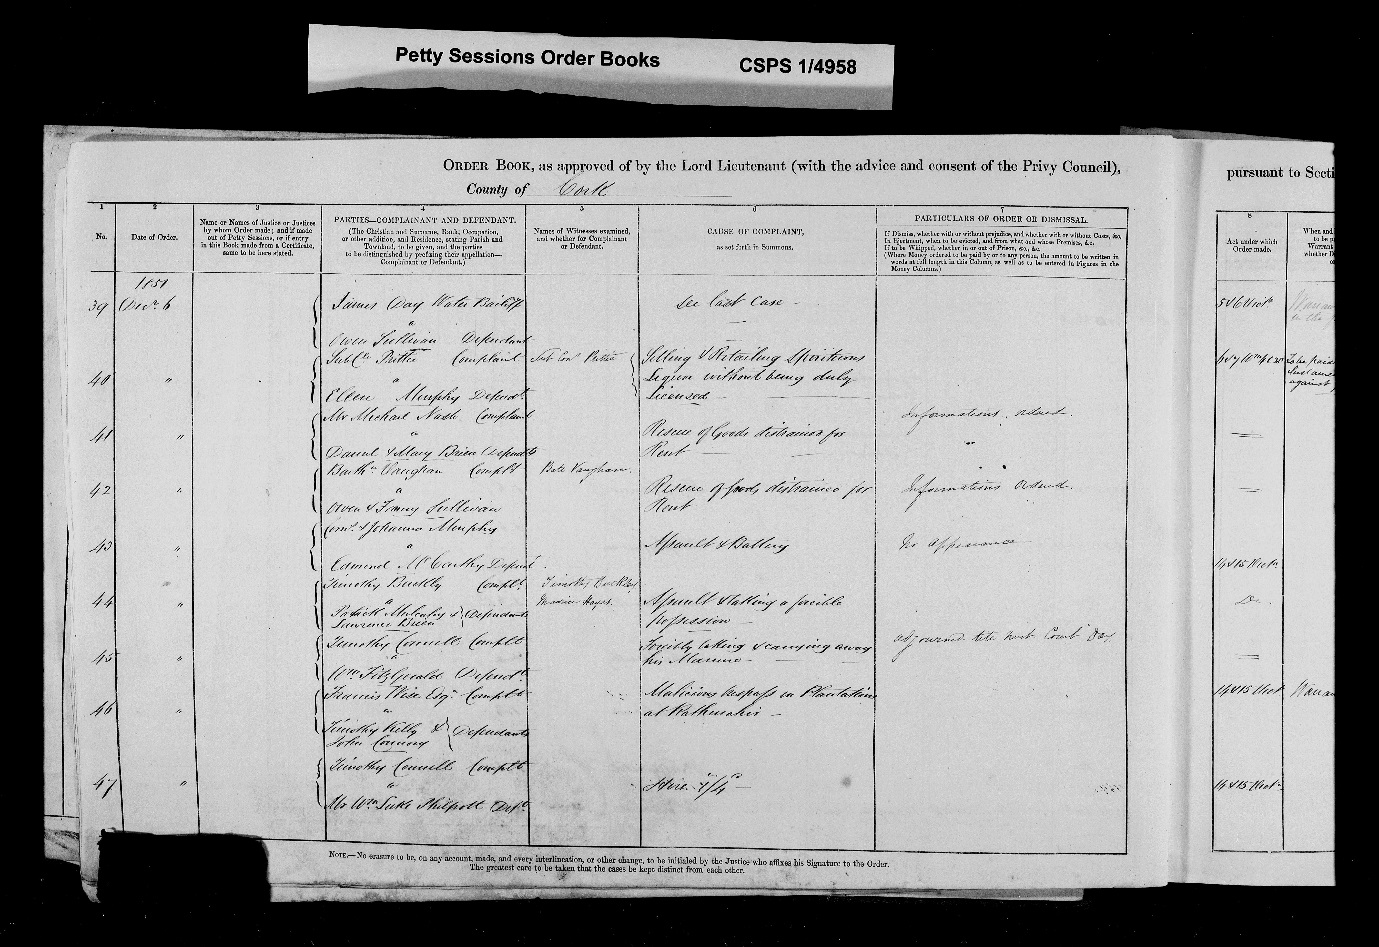 C:\Users\Virginia Rundle\Documents\Ancestry\Wise Files\Wises from Cork\FrancisWise 1851 Petty Sessions Complainant.jpg